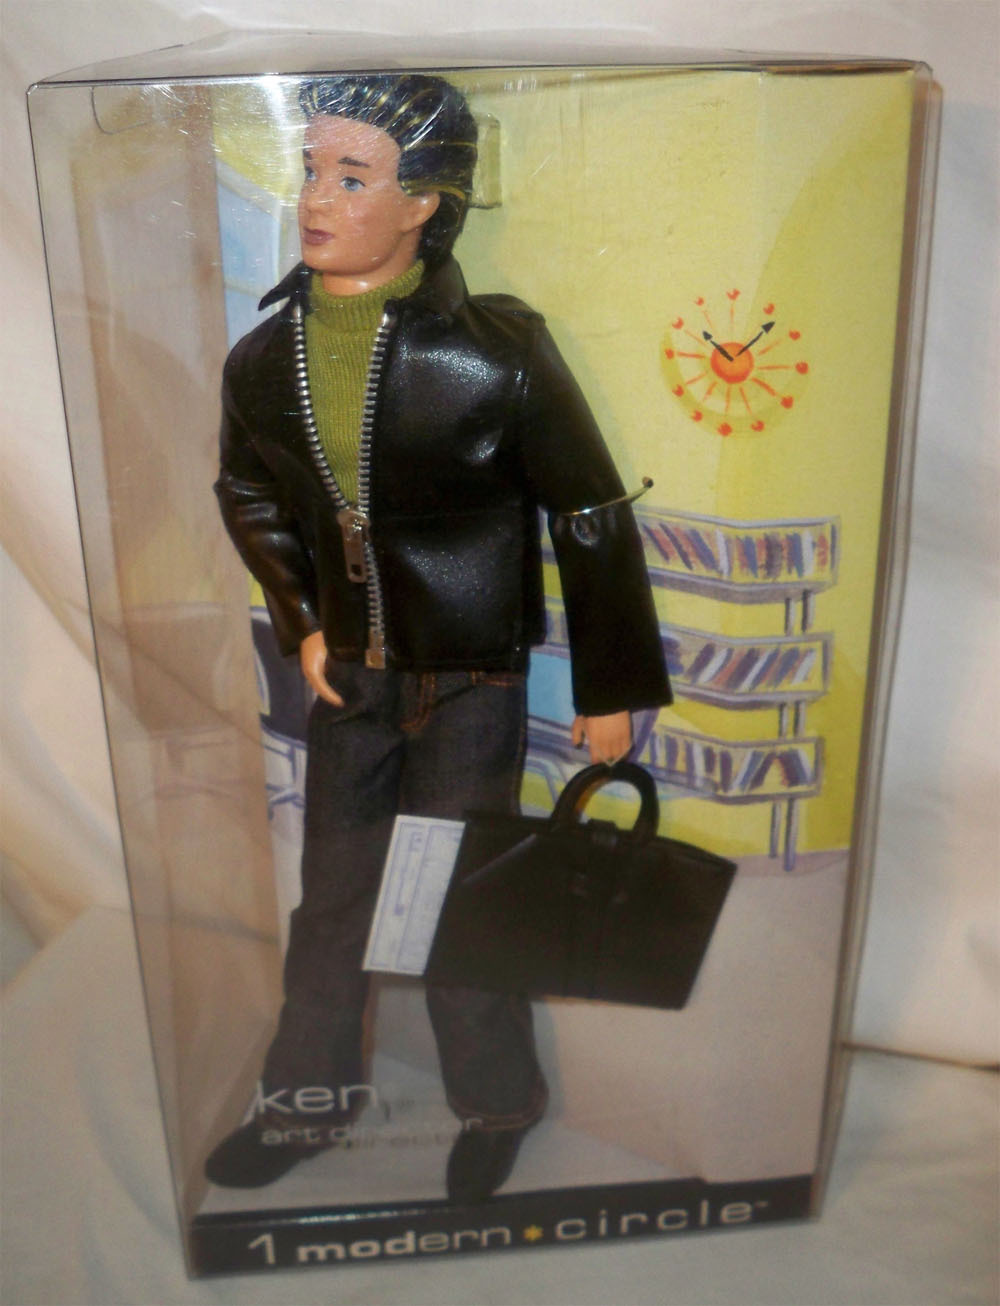 Primary image for 1 Modern Circle Ken  Doll NRFB Collector Edition 2003